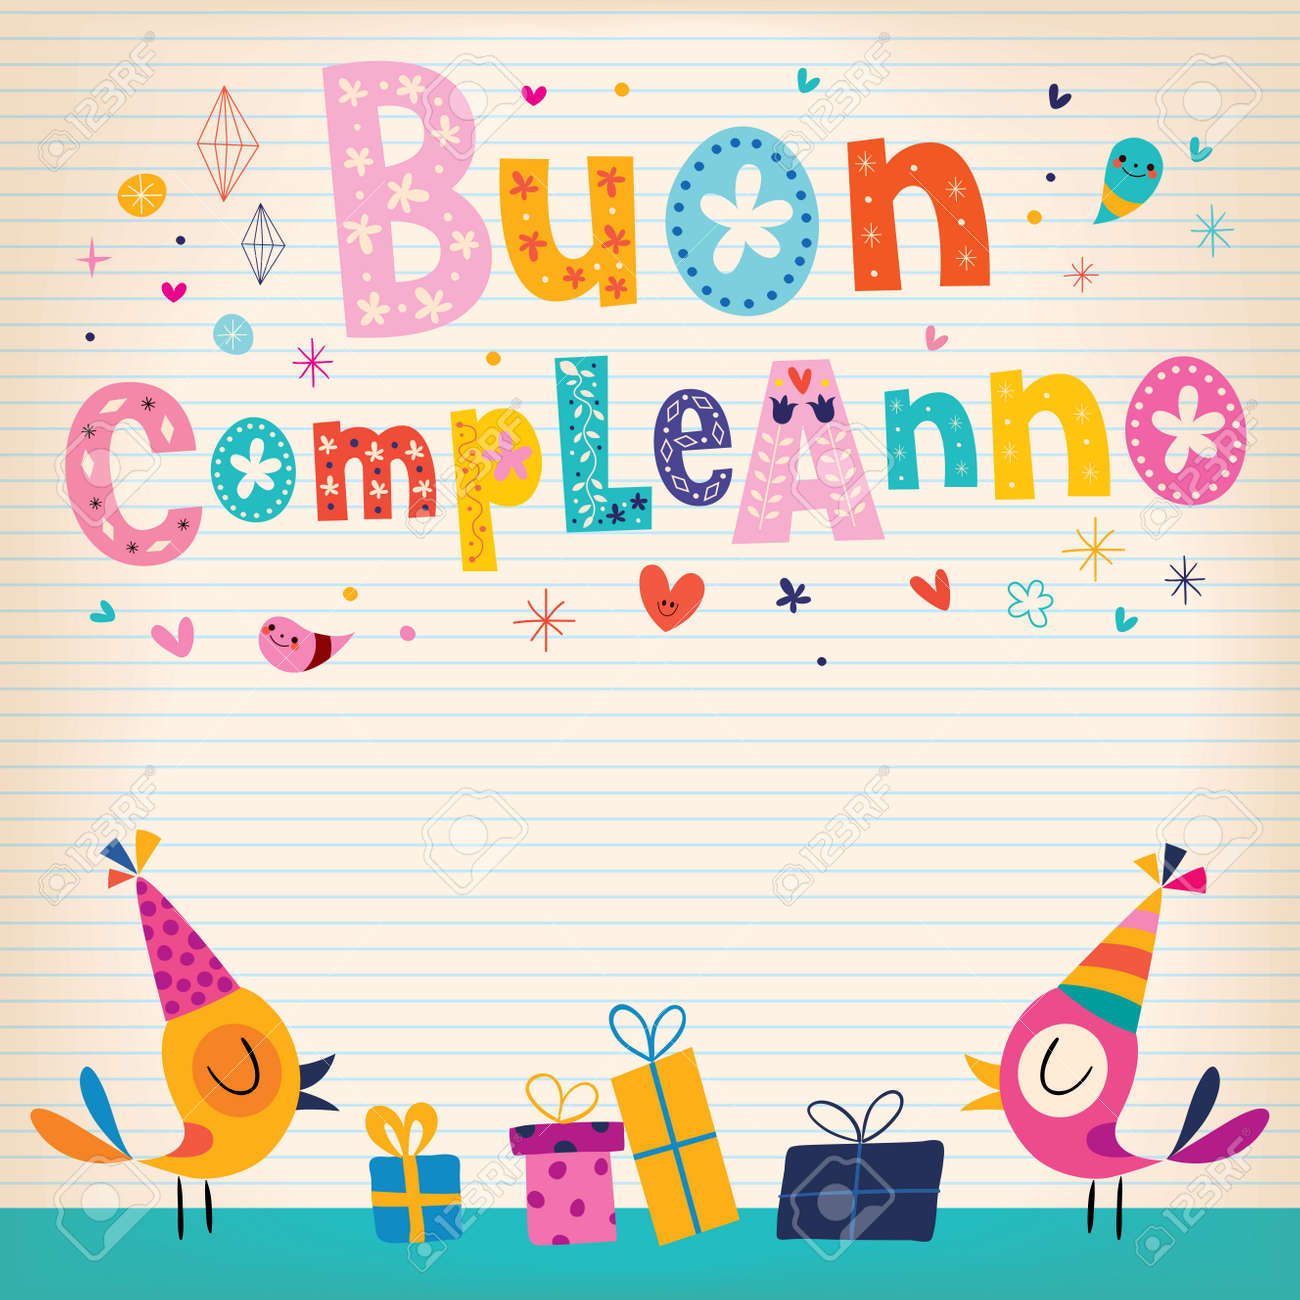 Buon Compleanno Happy Birthday In Italian Card Royalty Free Cliparts